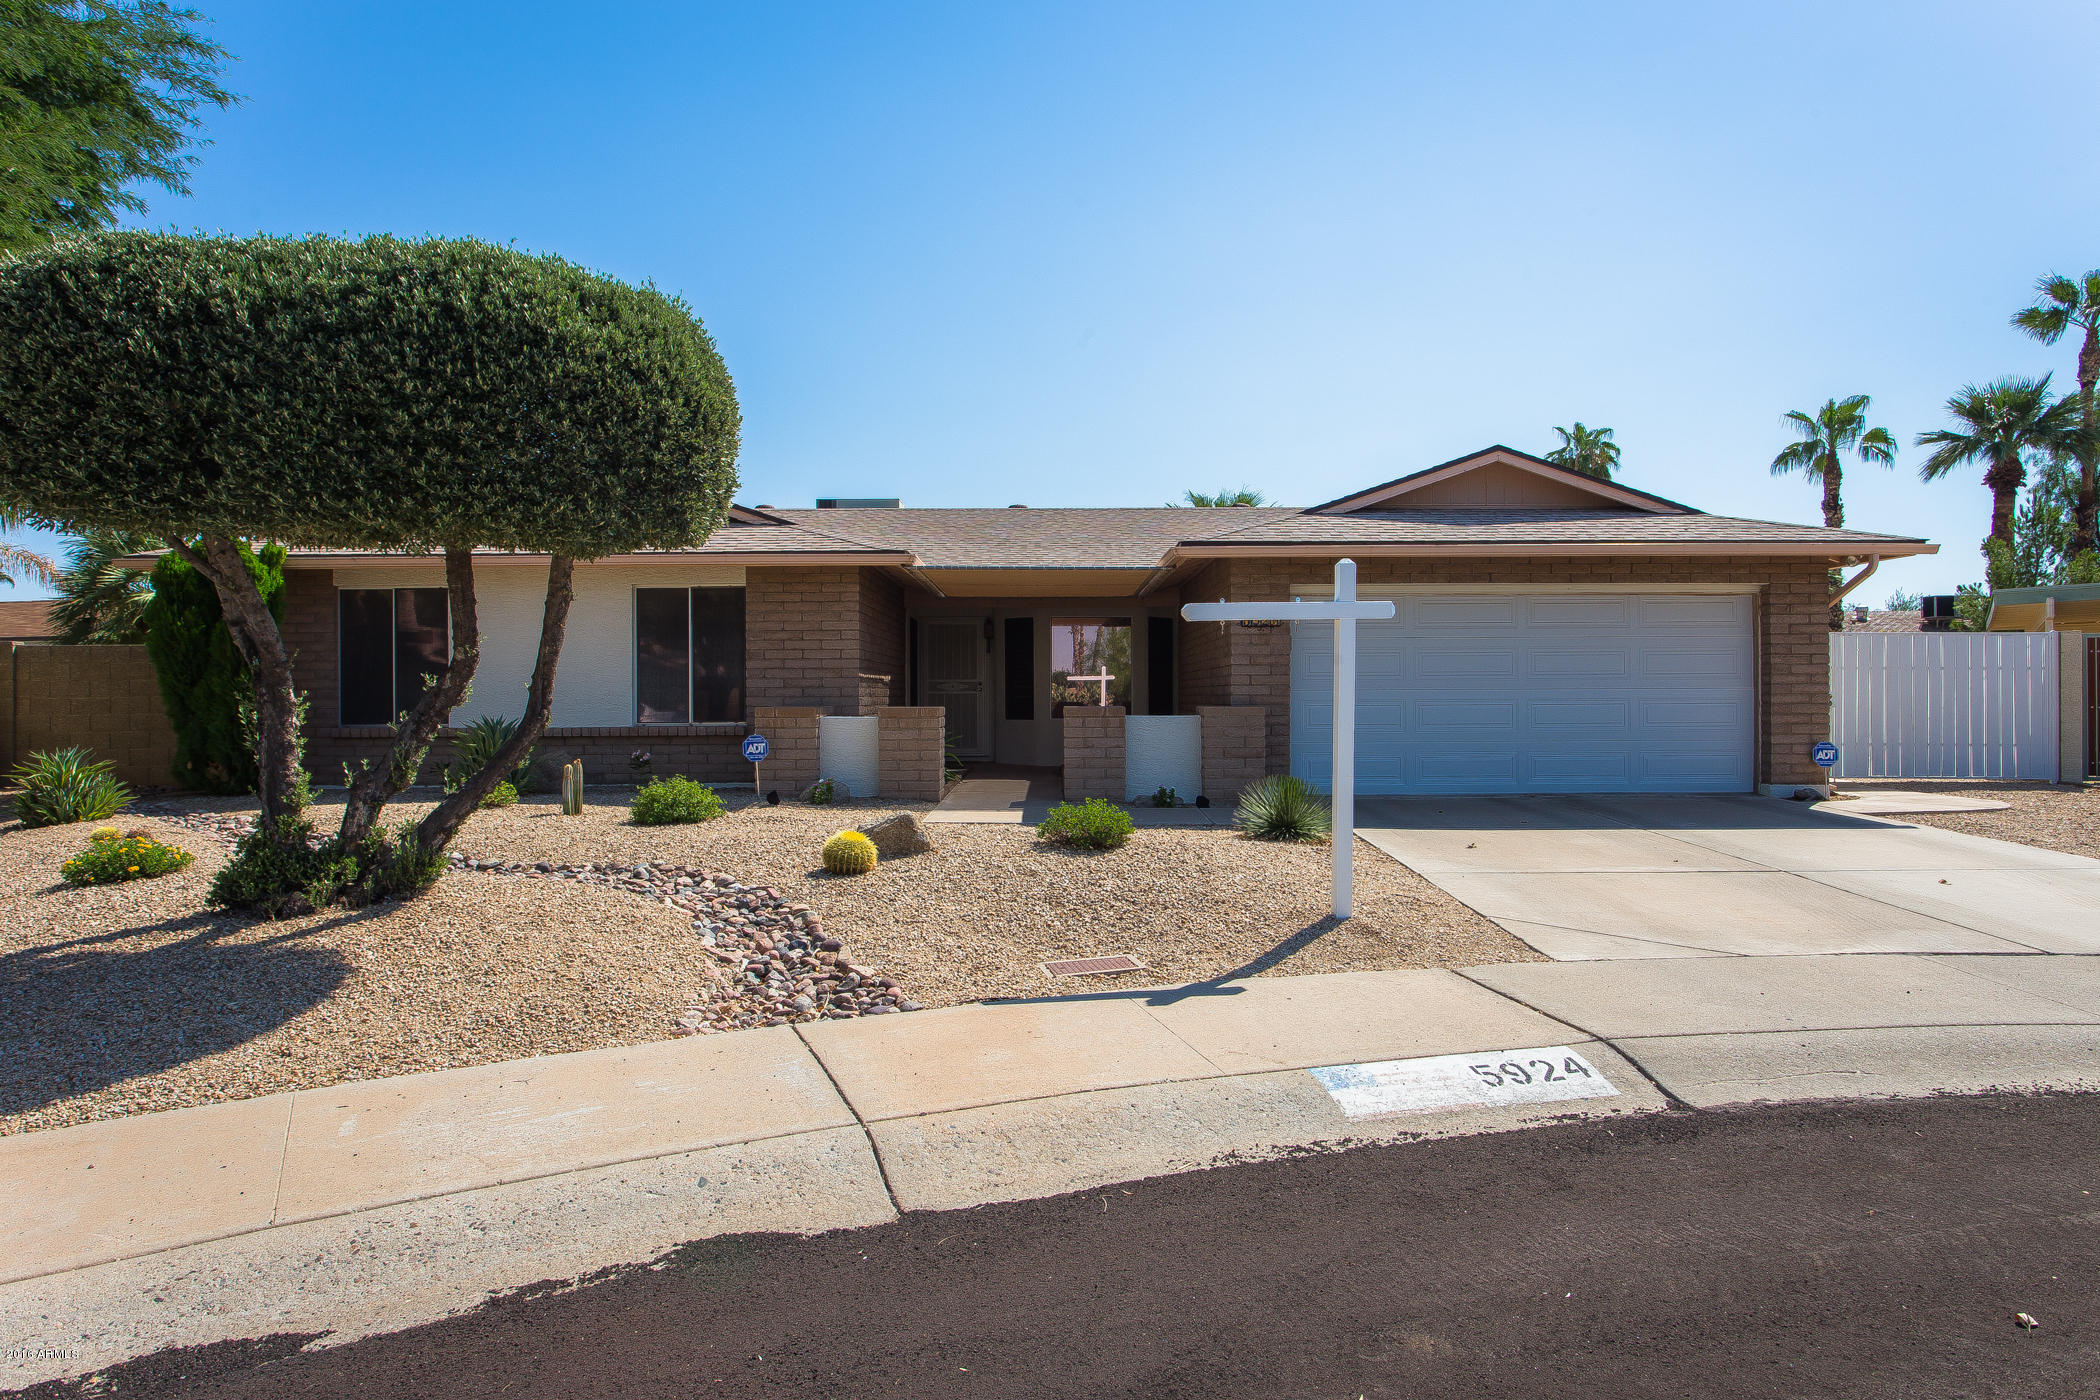 Claire Ownby Phoenix Arizona Area: Featured Listing: 5924 E Claire Drive Scottsdale, AZ 85254